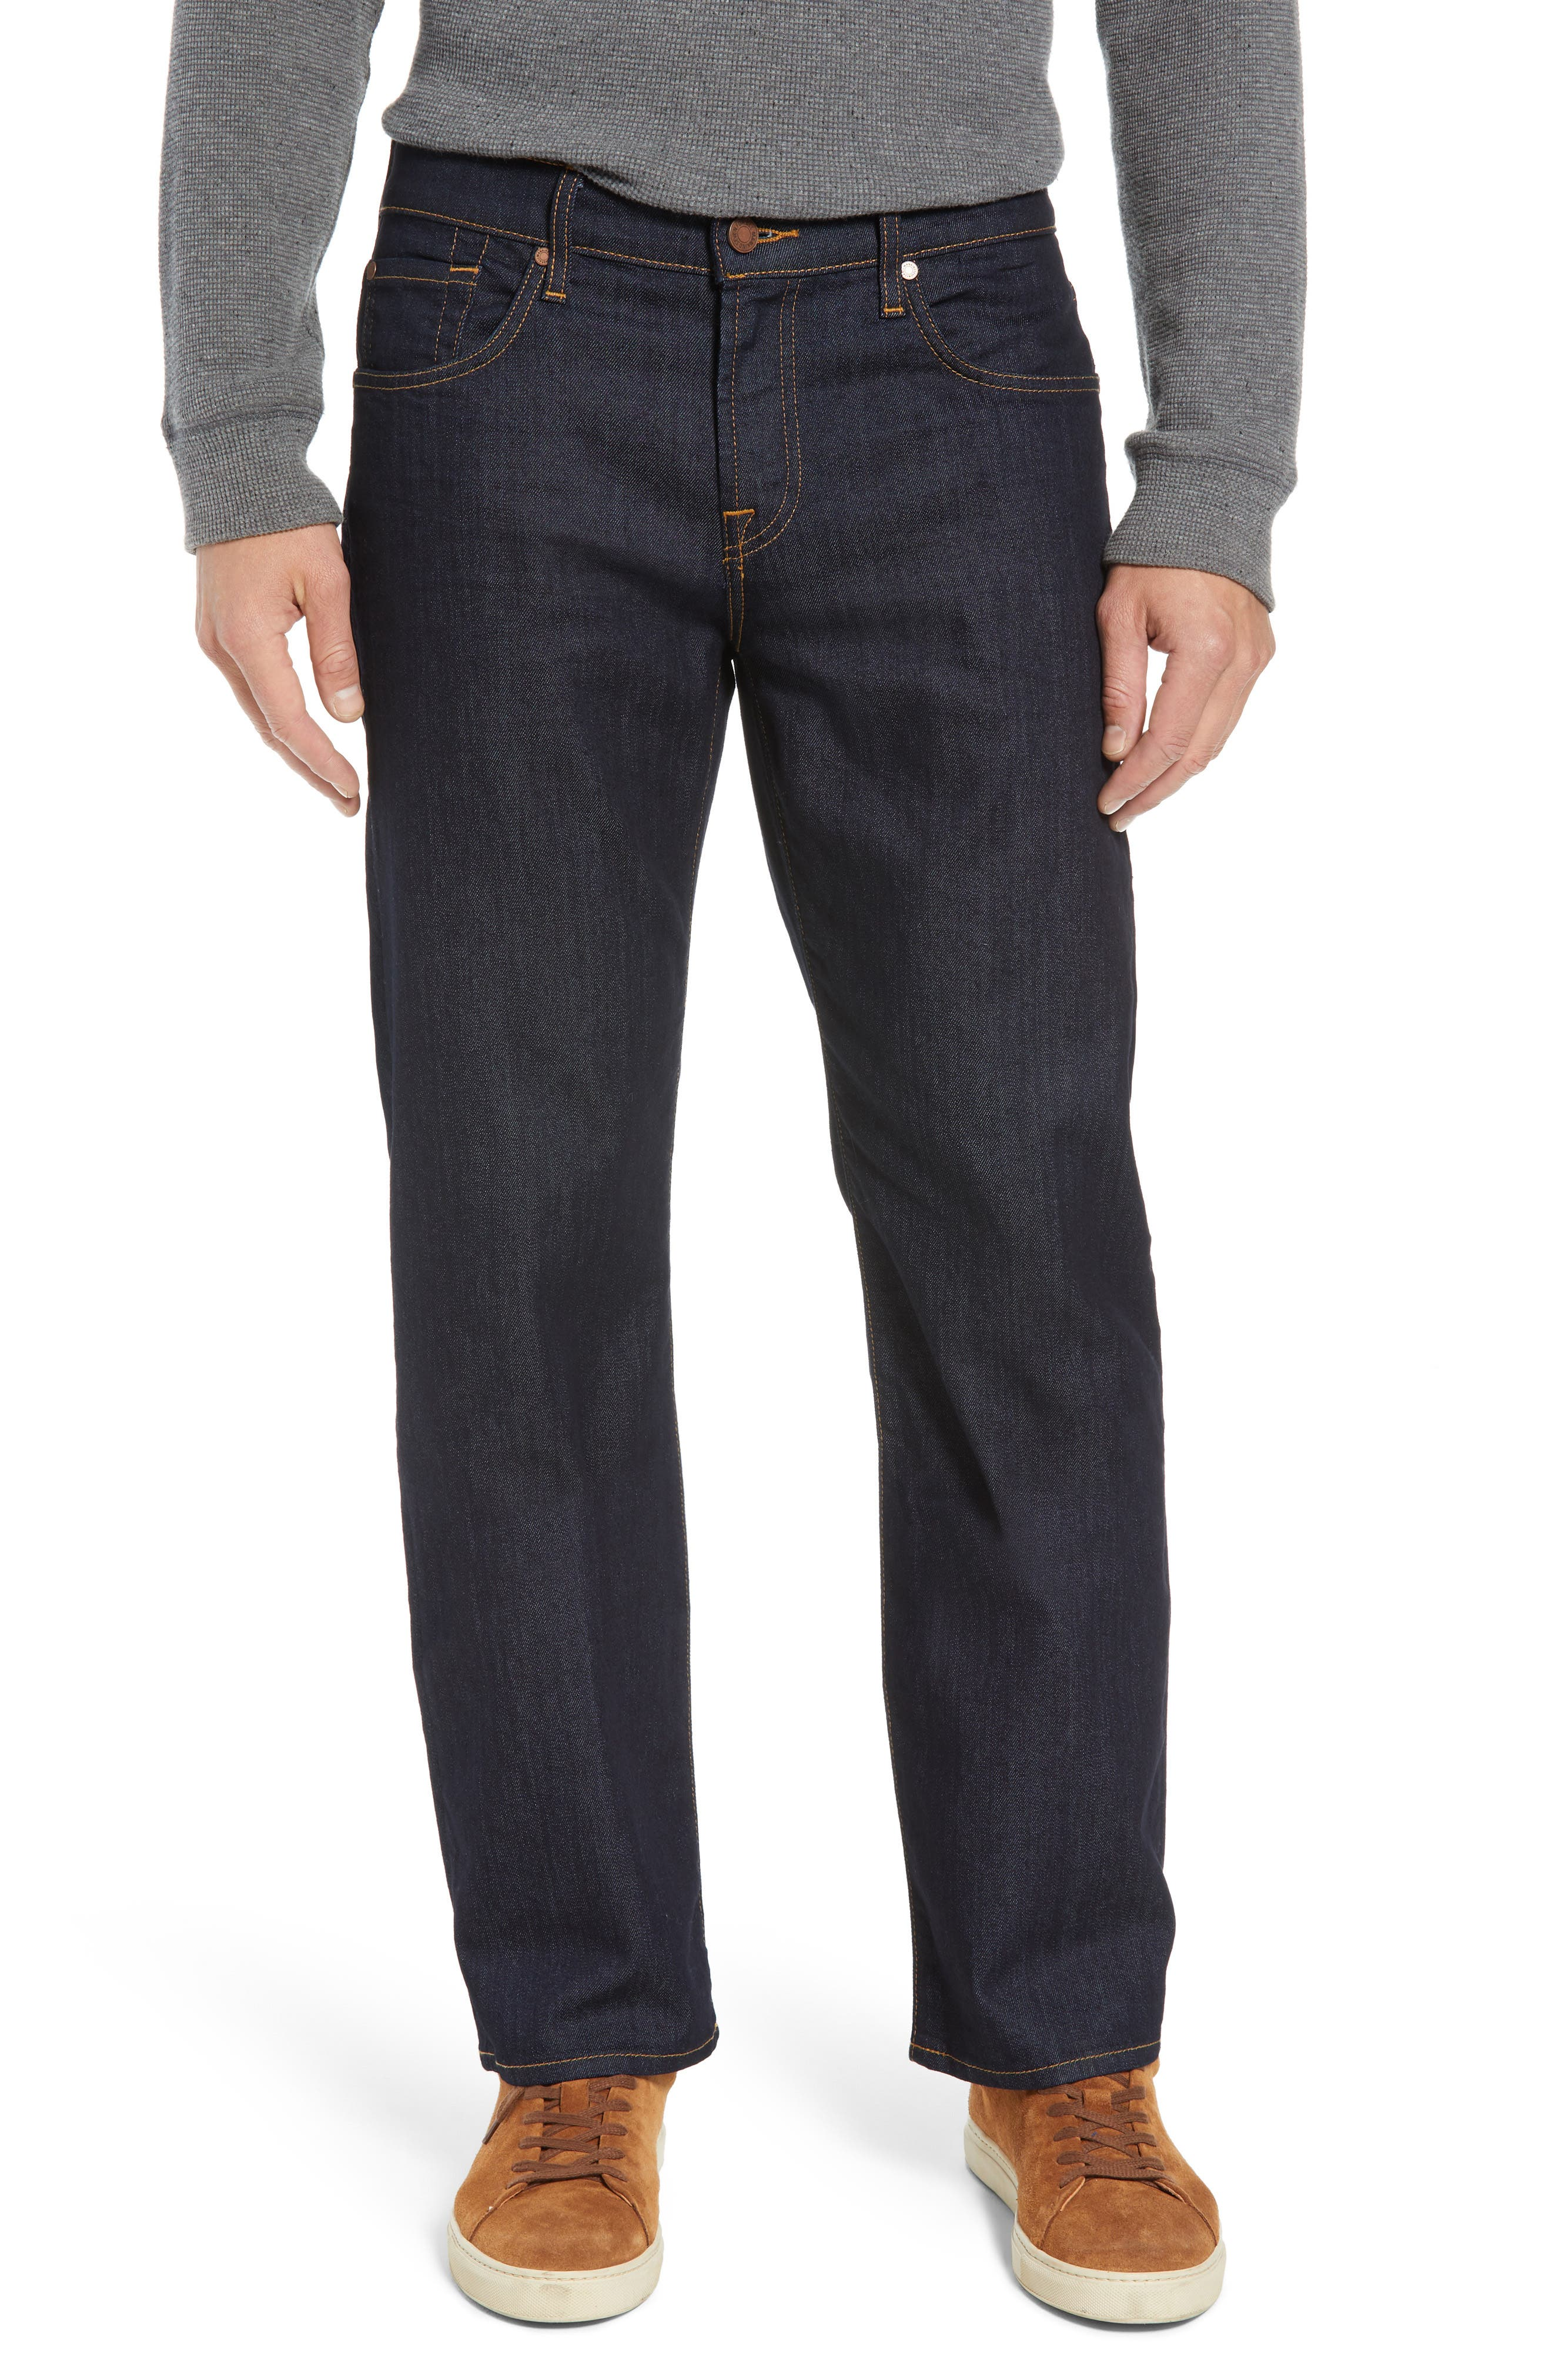 Austyn Airweft Relaxed Straight Leg Jeans,                             Main thumbnail 1, color,                             CAVEAT